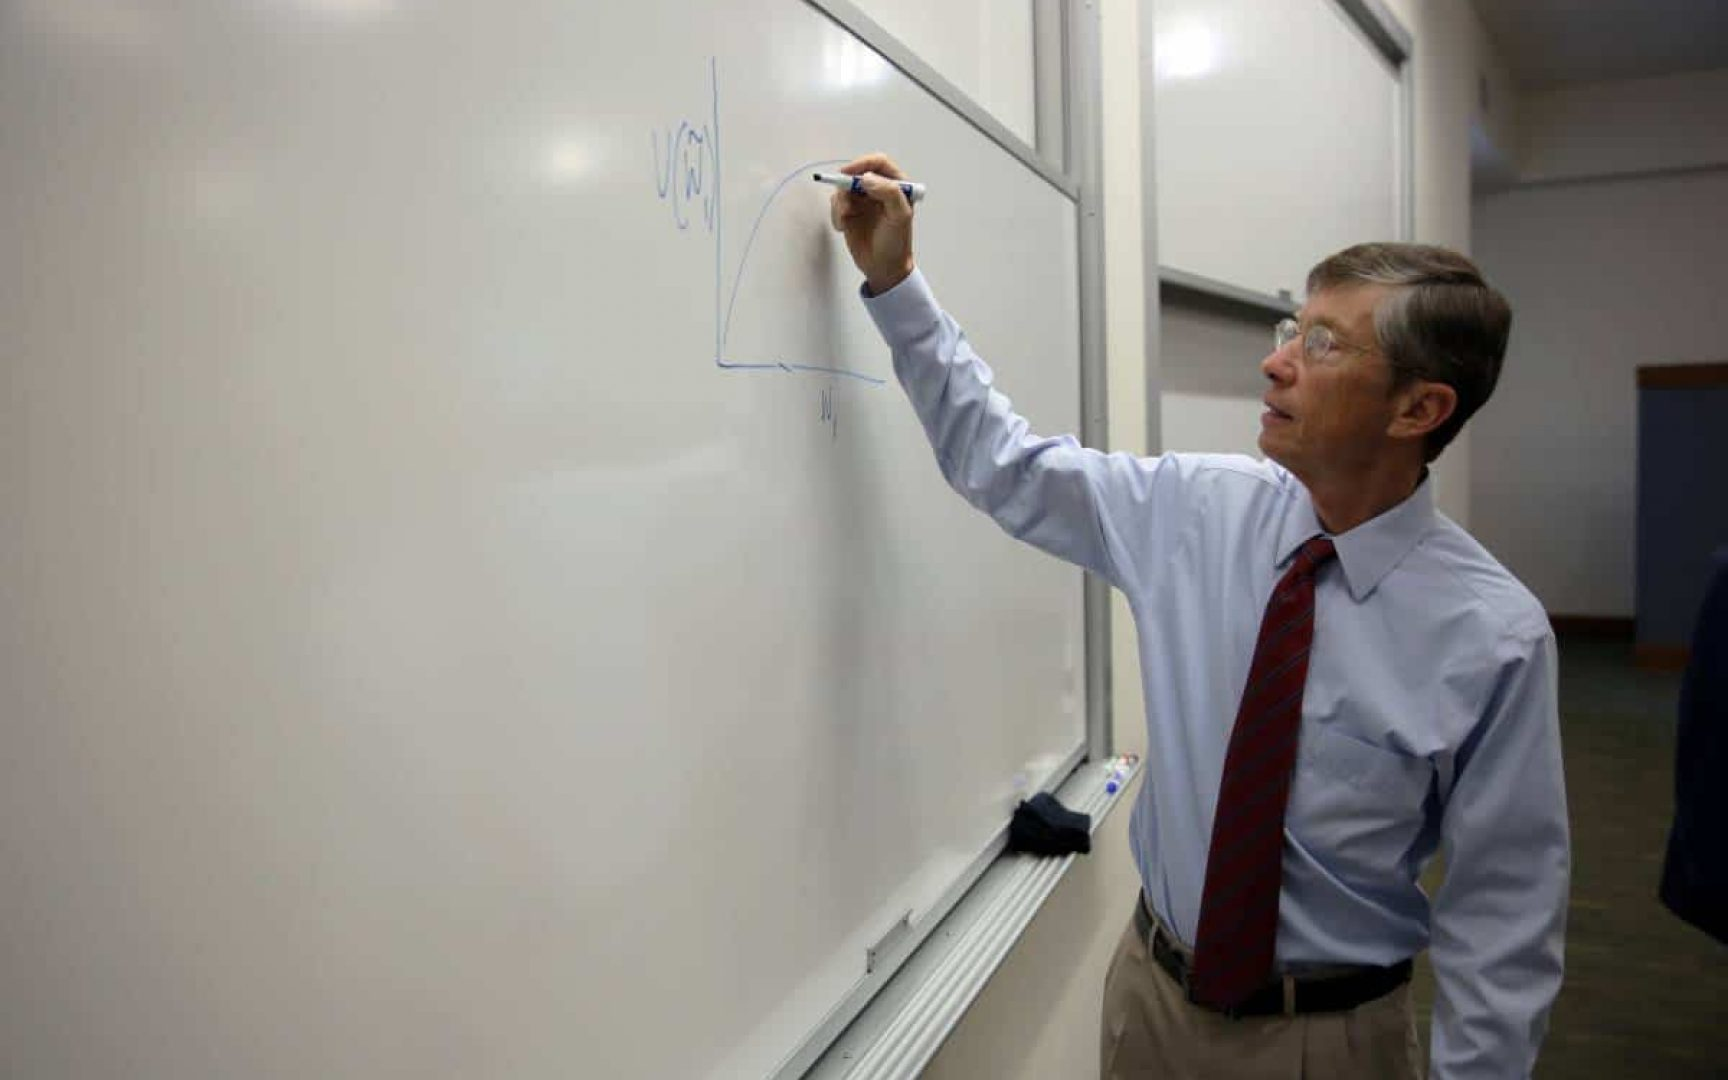 Jay Ritter draws a graph on a whiteboard in a classroom